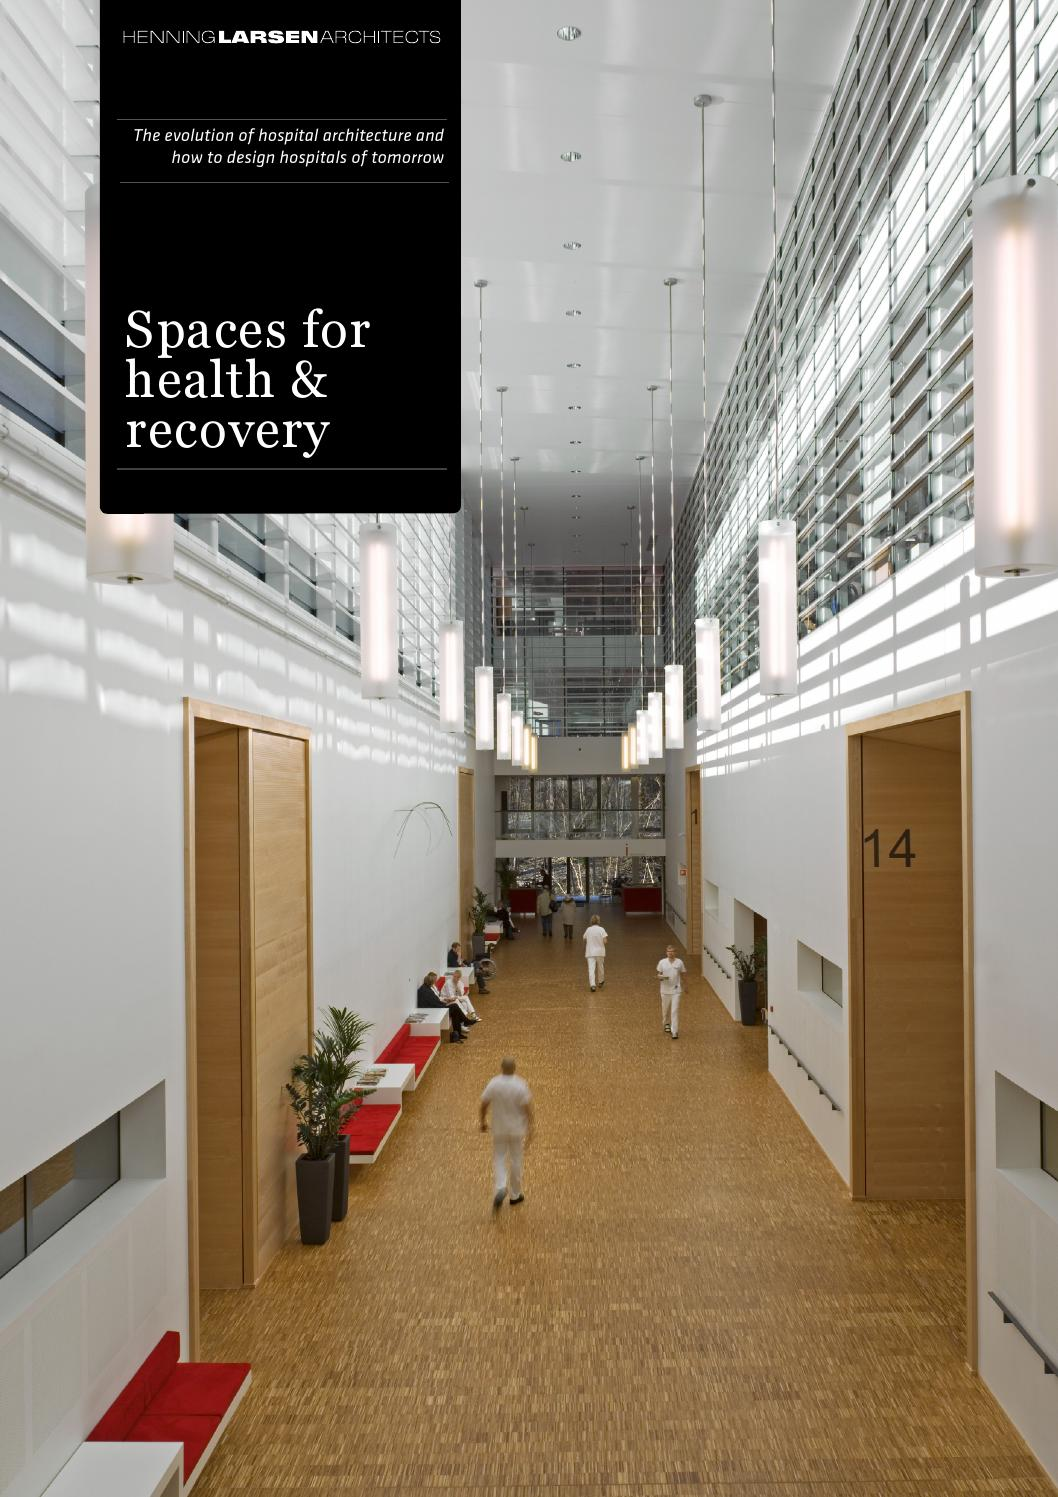 Spaces for Health and Recovery by Henning Larsen Architects